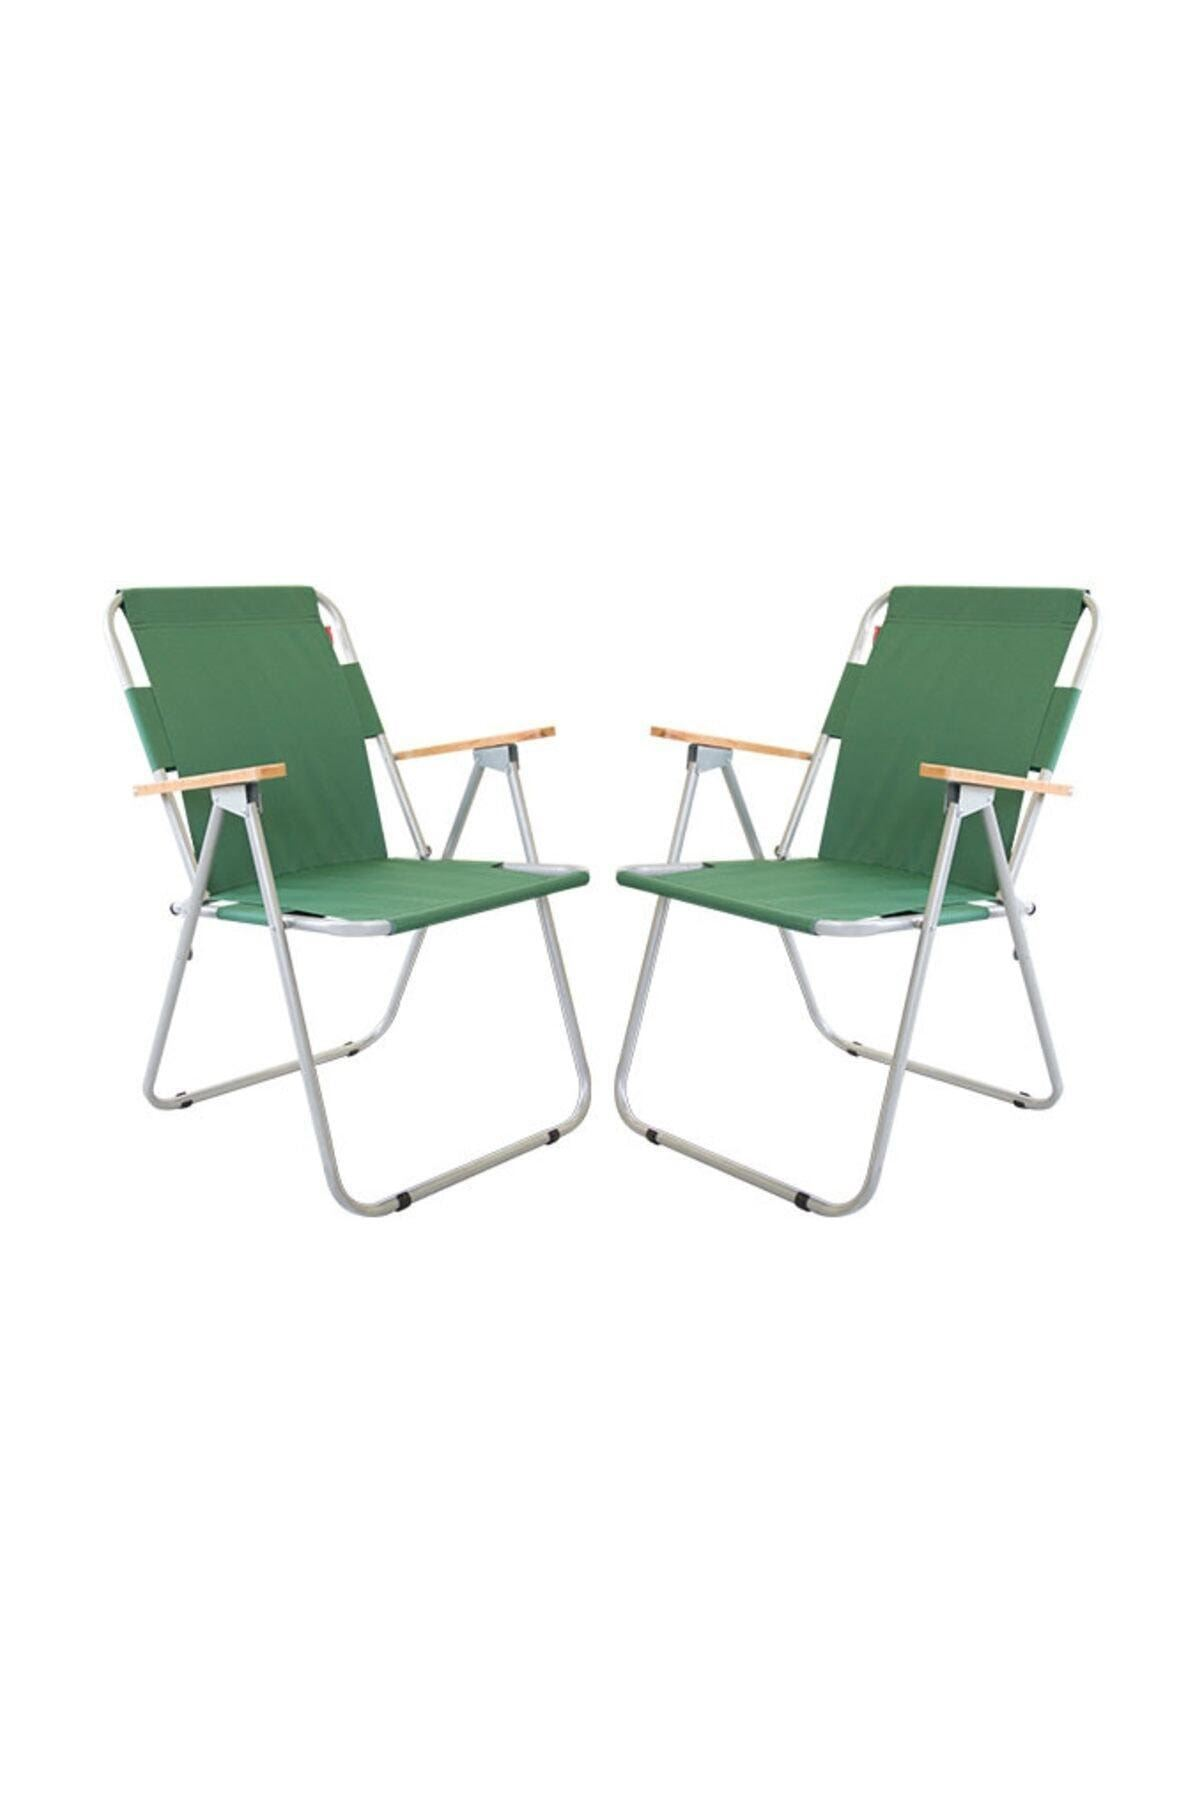 Bofigo 2 Pieces Folding Chair Camping Chair Balcony Chair Foldable Picnic and Garden Chair Green